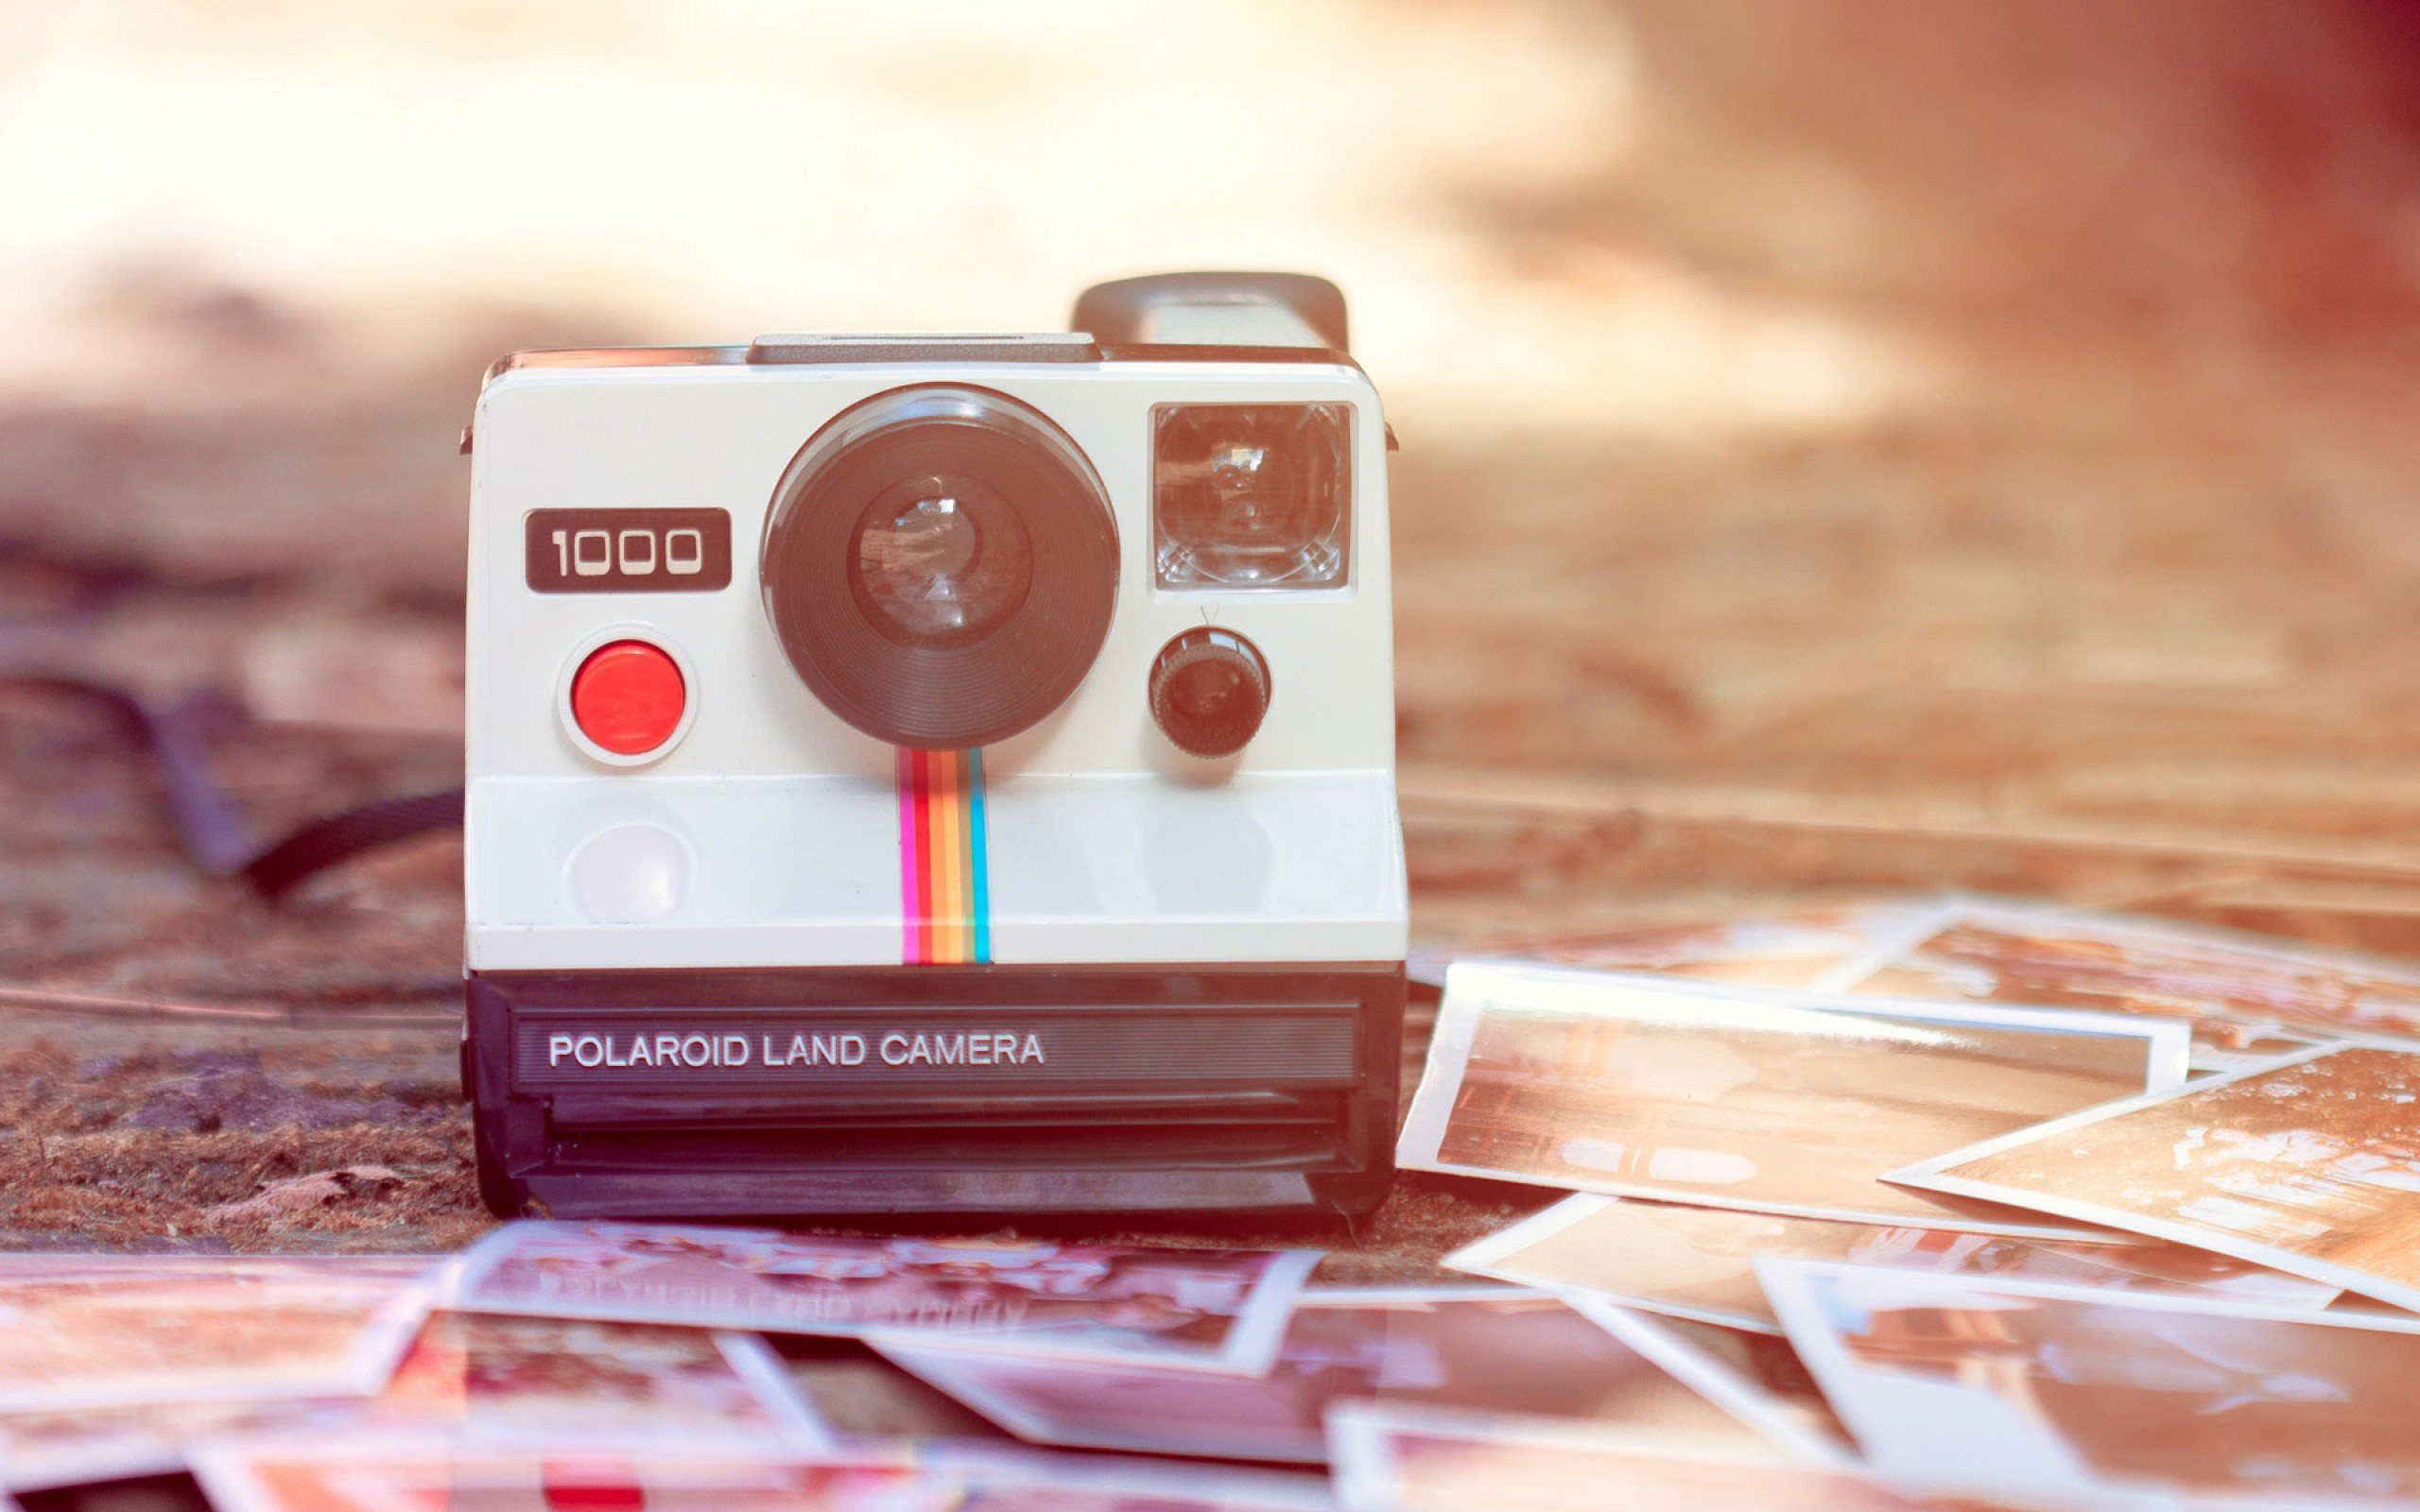 Polaroid Land Camera HD Wallpapers 2560x1600